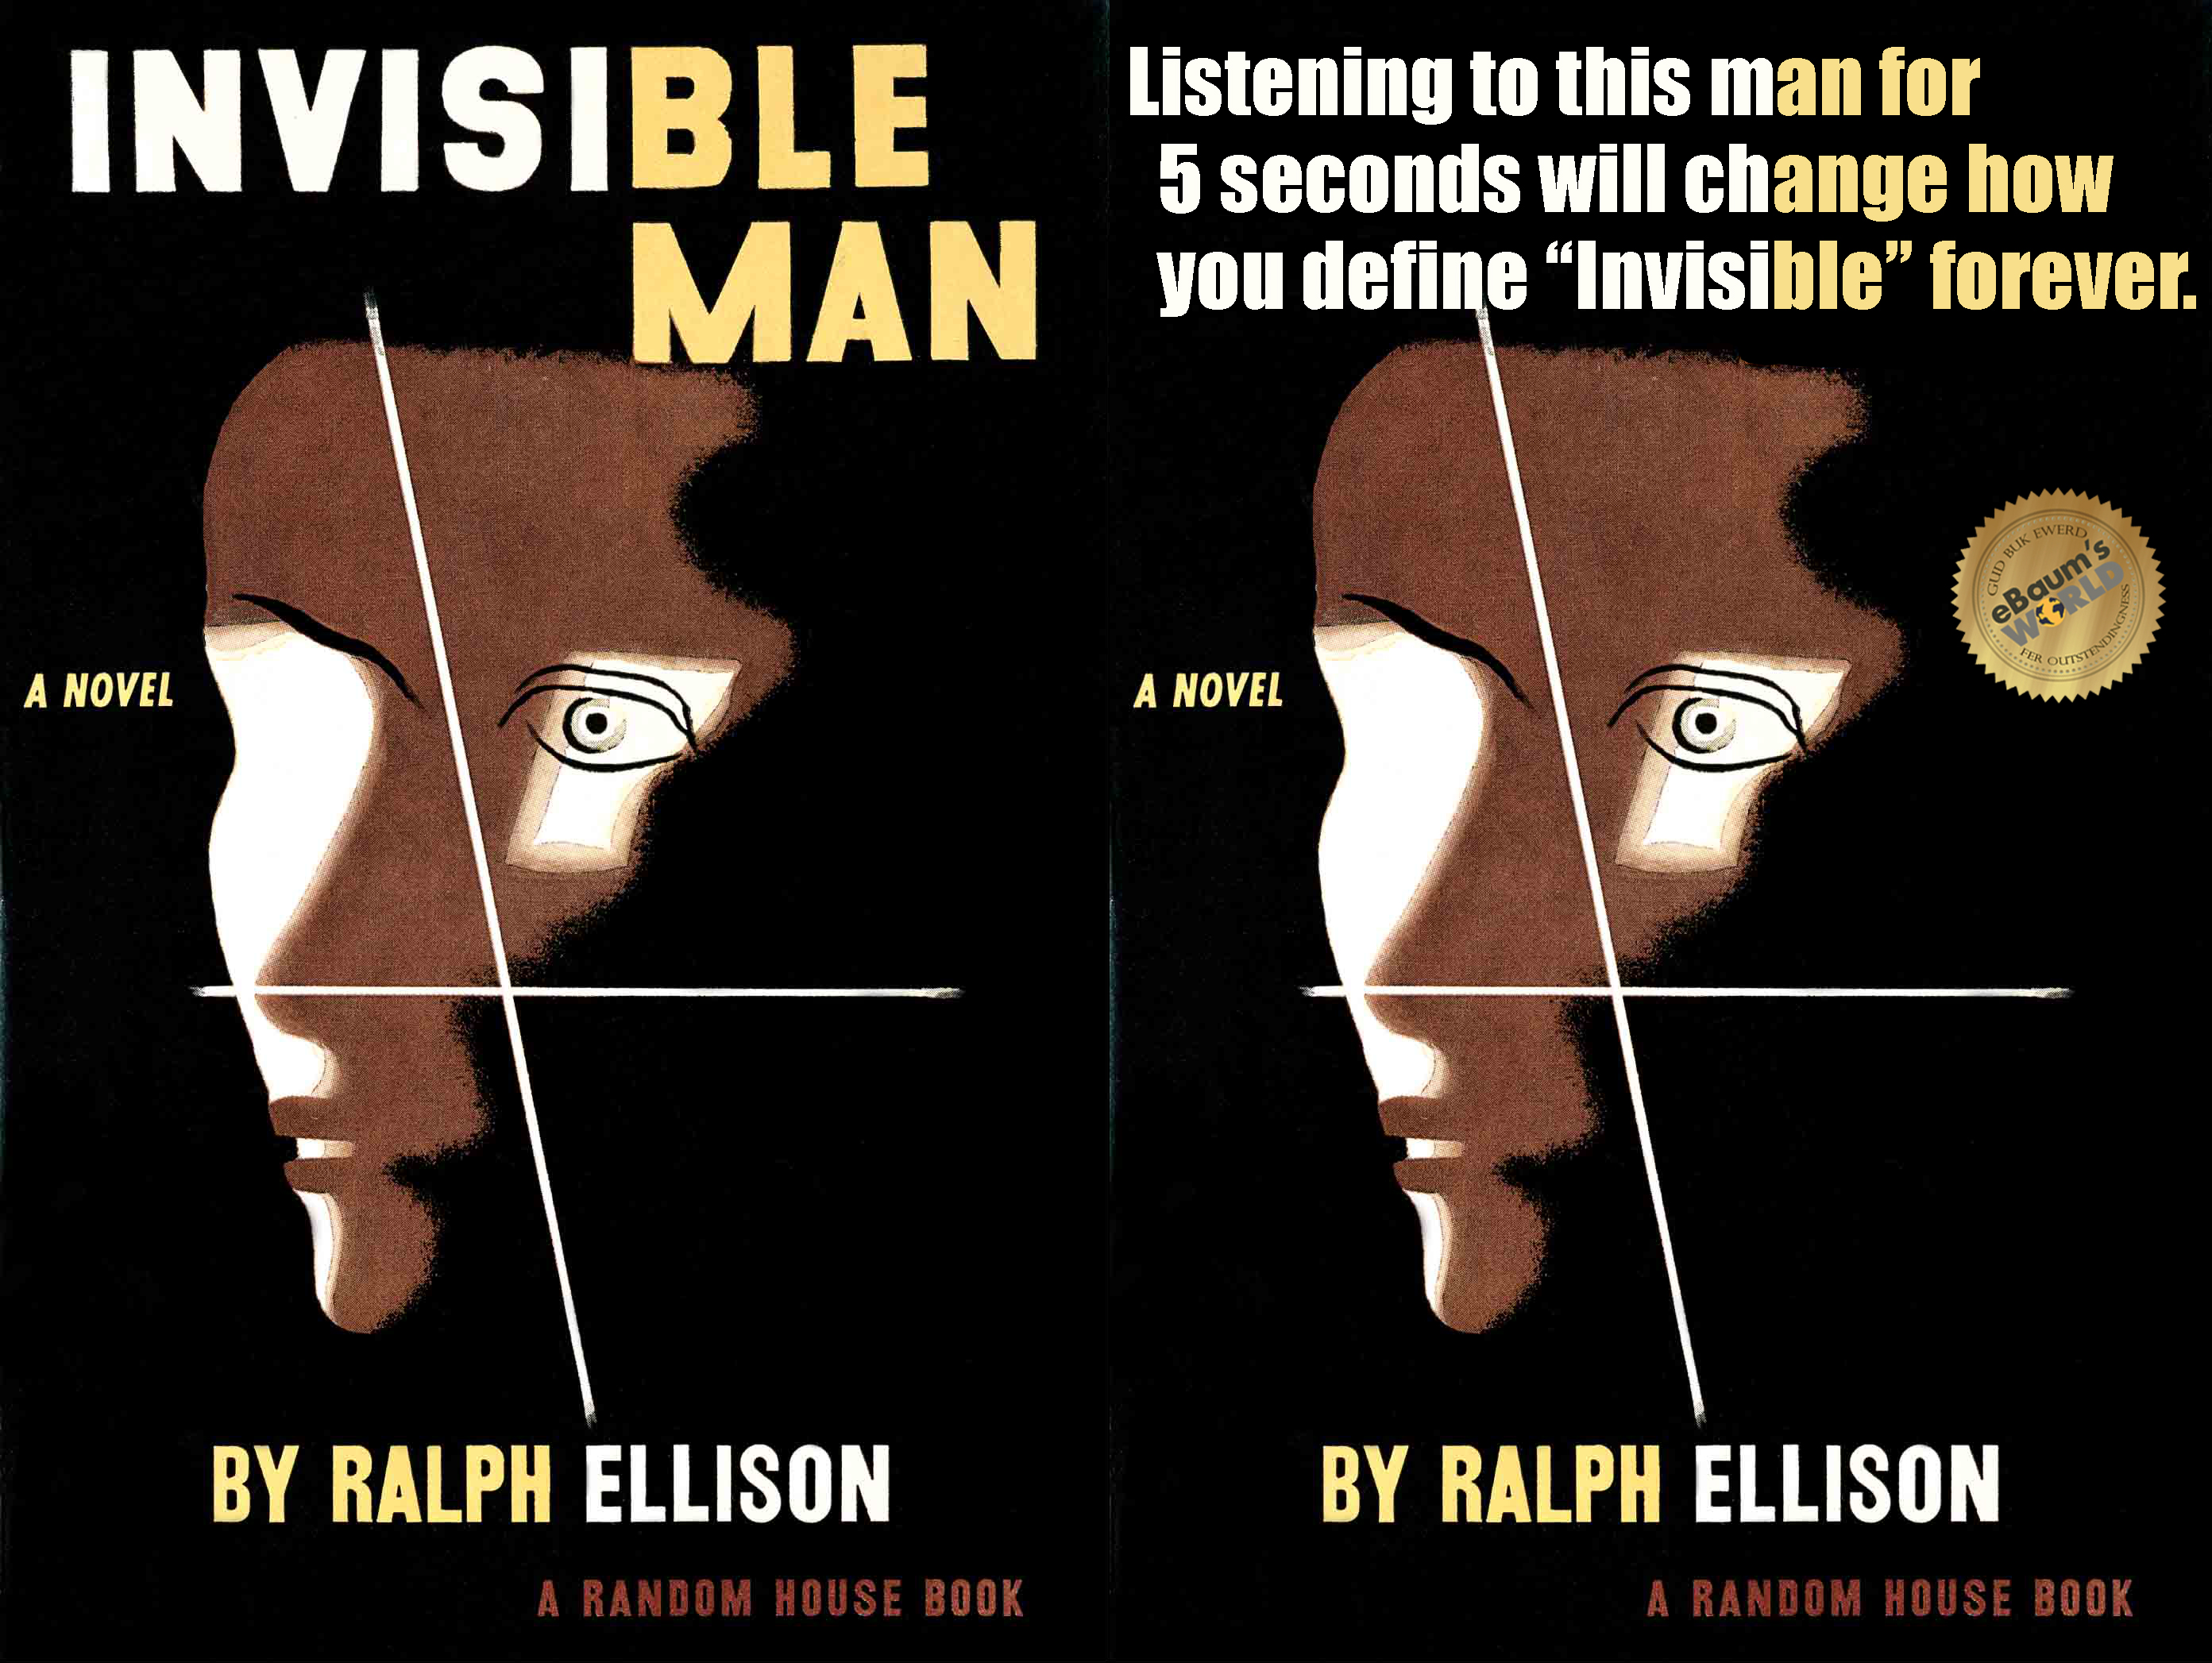 The invisible man ralph ellison audio book mp3 players